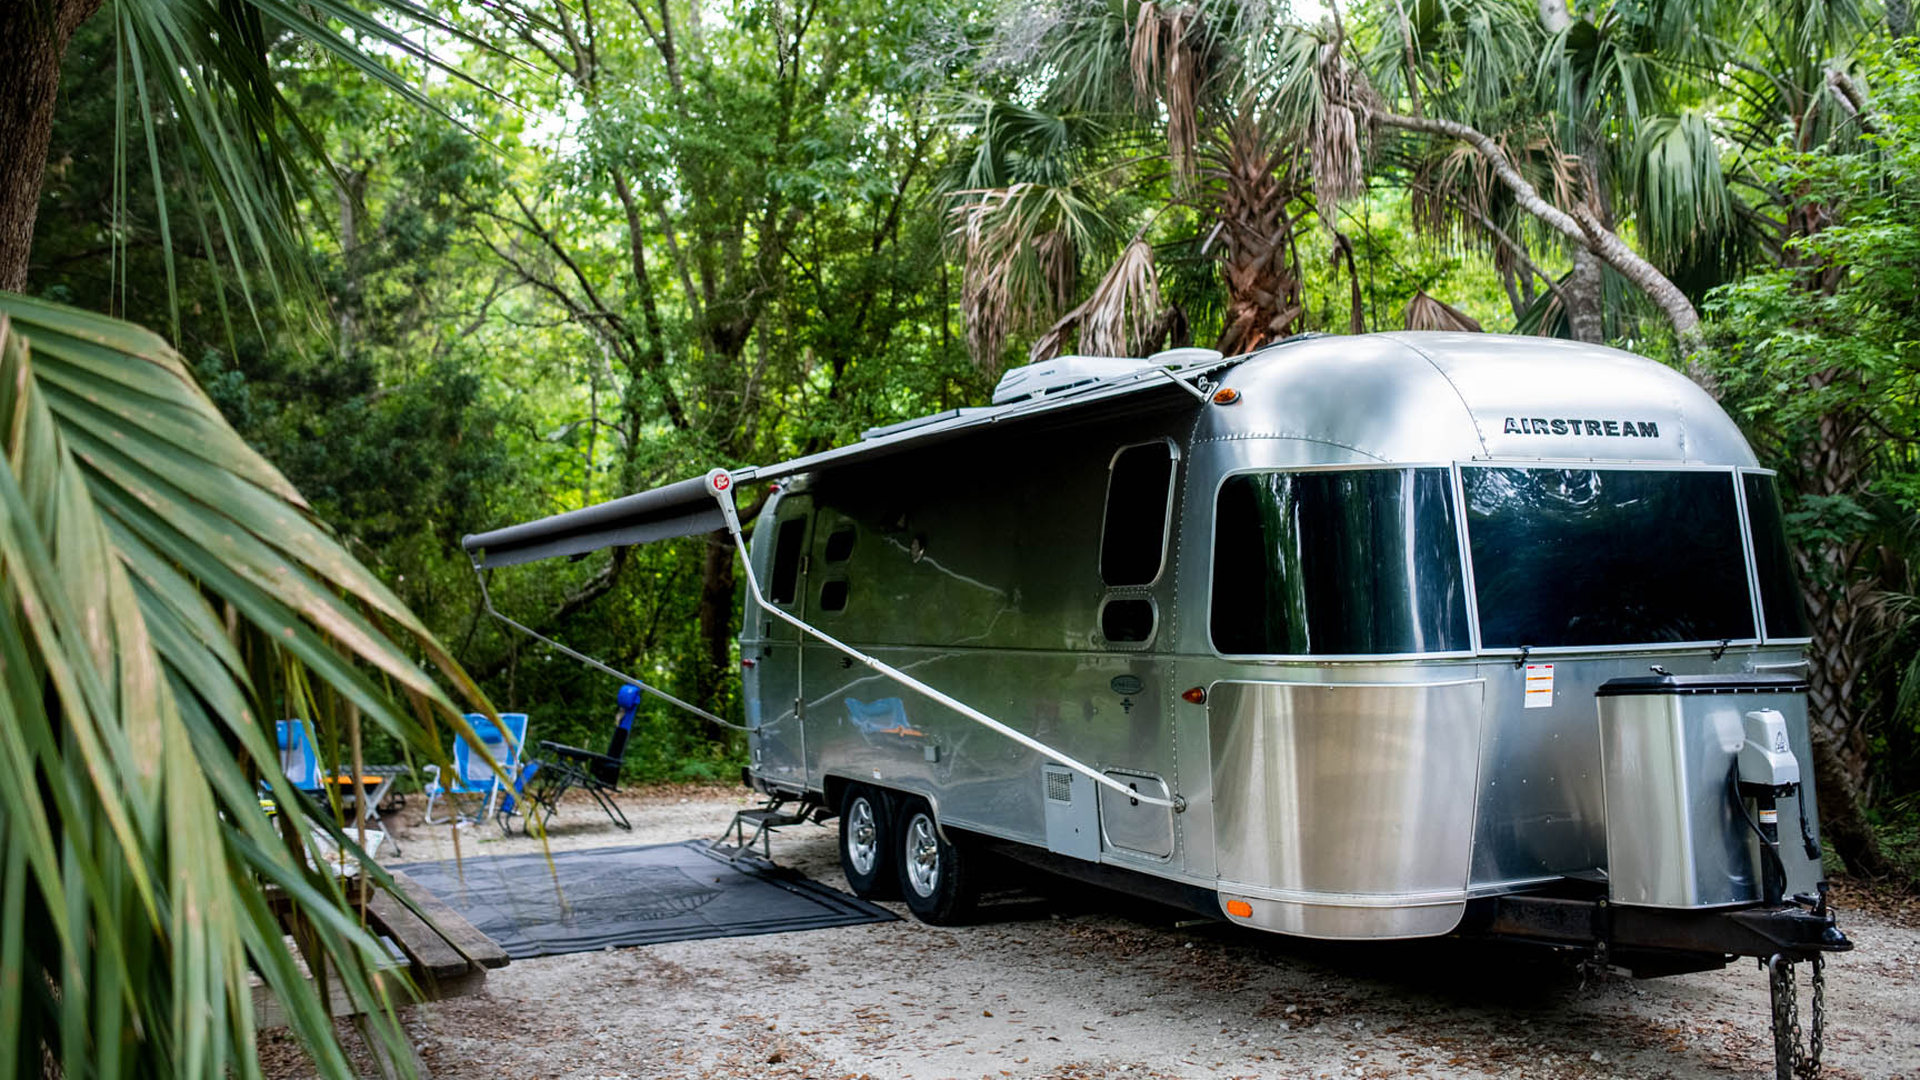 Airstream-Anatomy-of-a-Campground-tropical